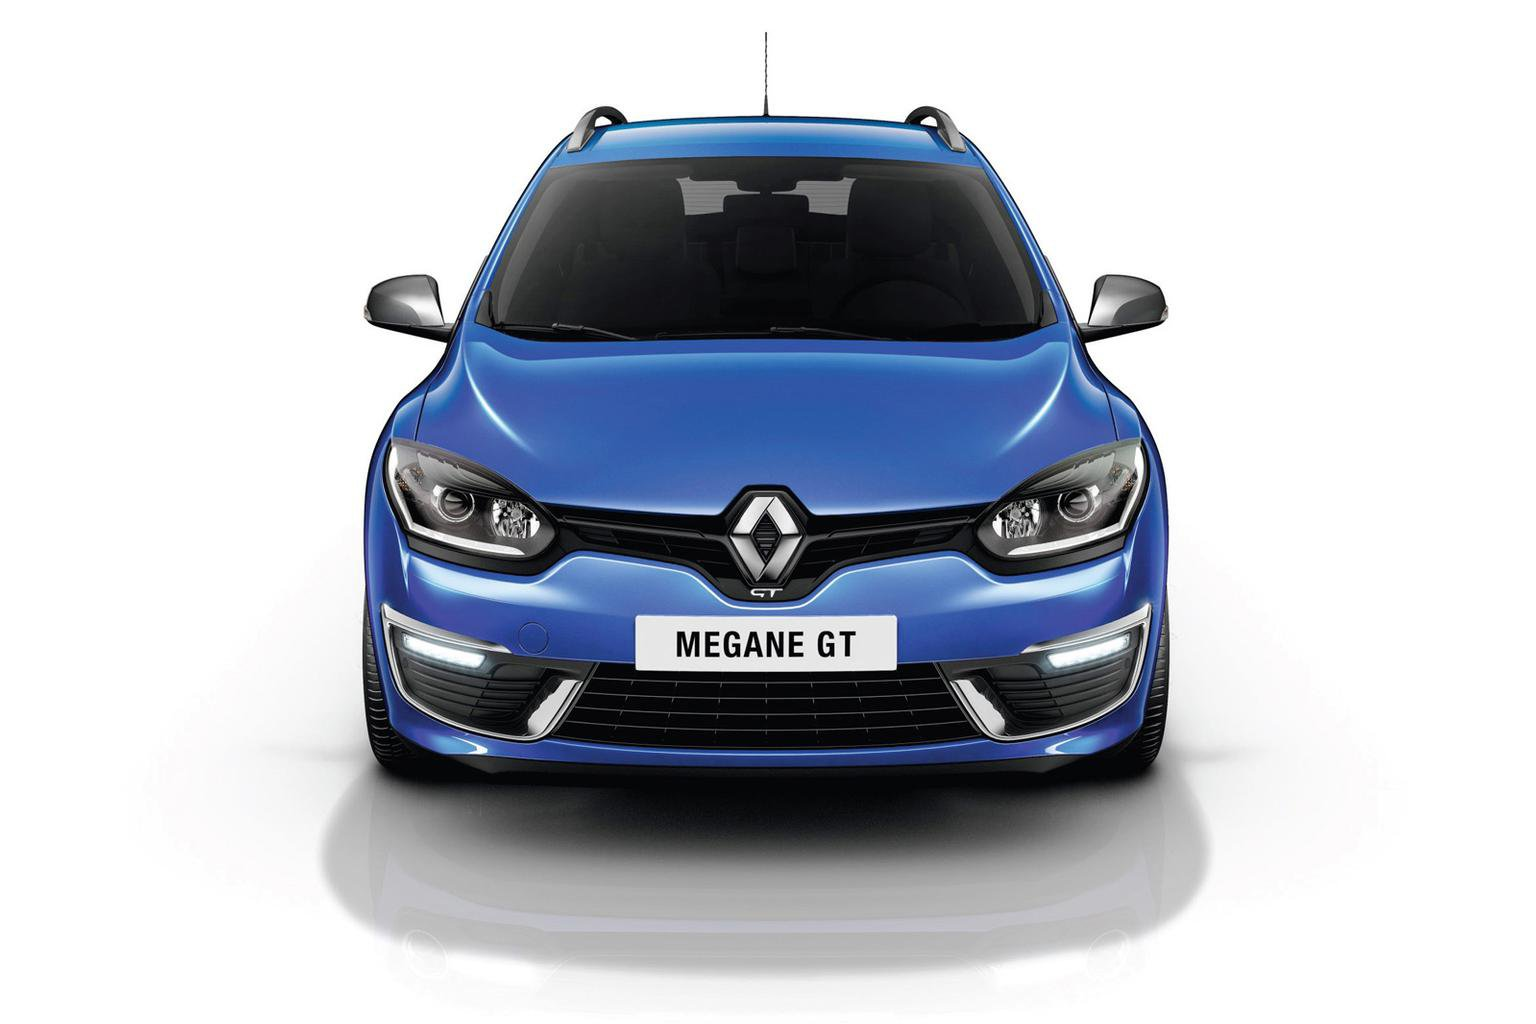 2014 Renault Megane face-lift revealed